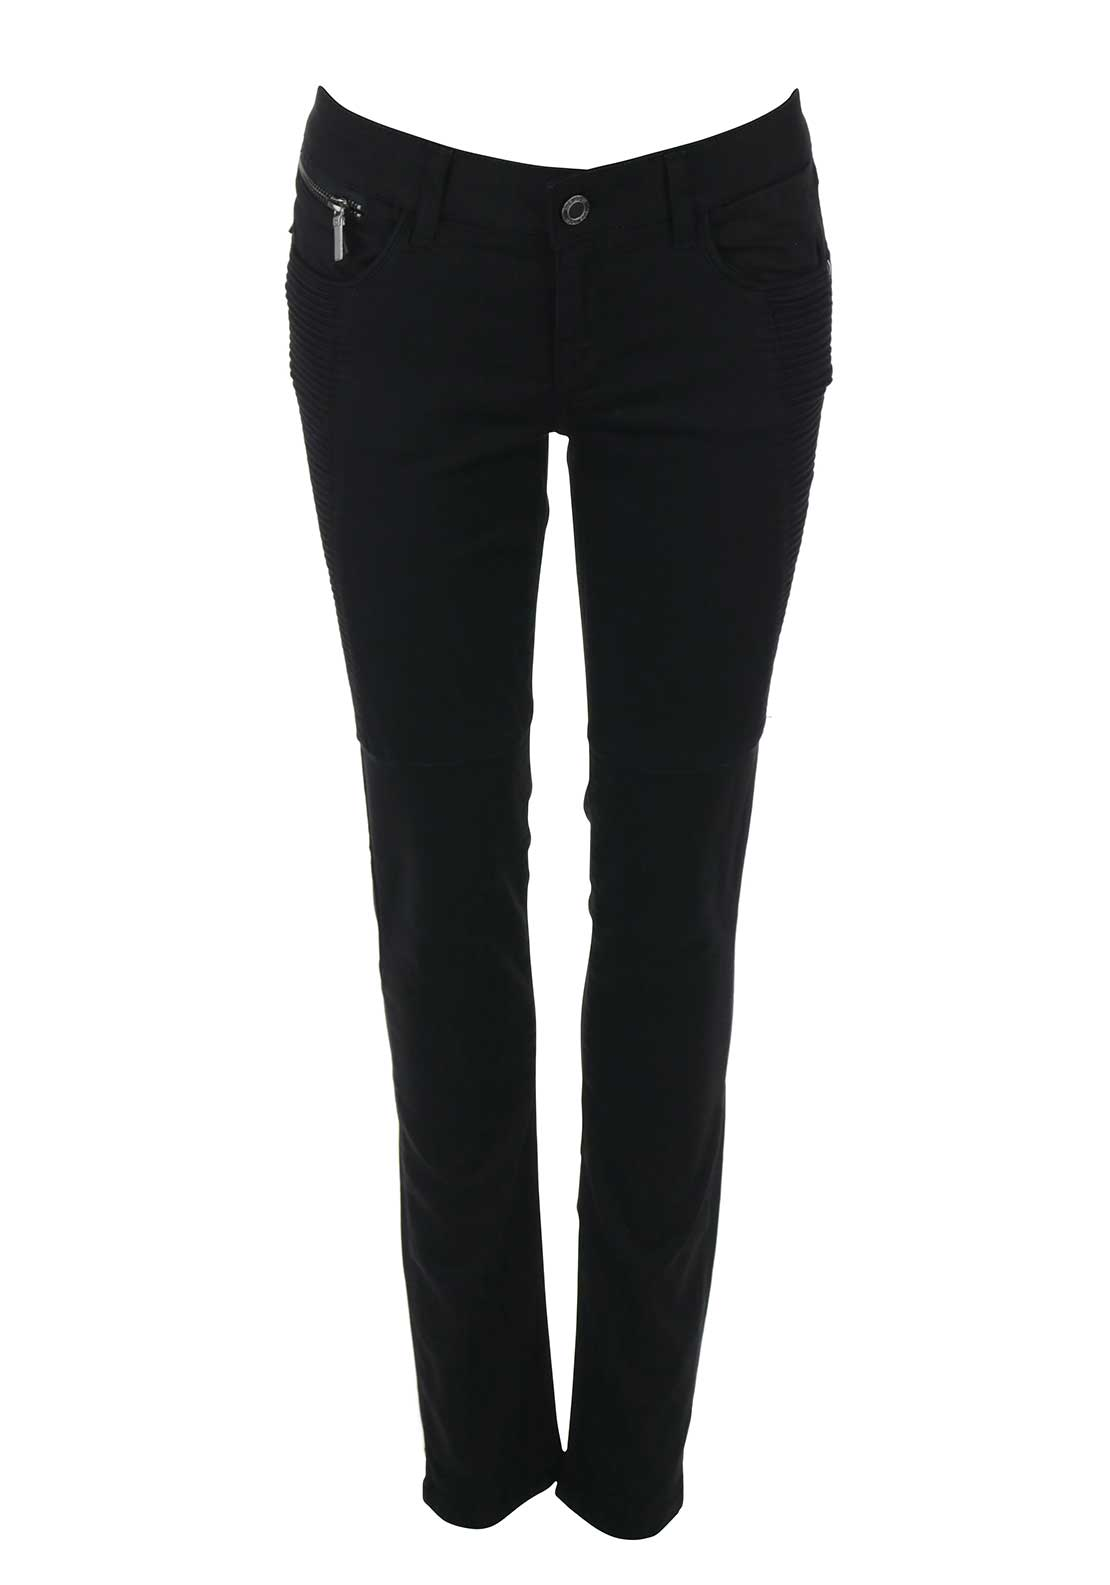 Mos Mosh Thurman Slim Leg Jeans, Black